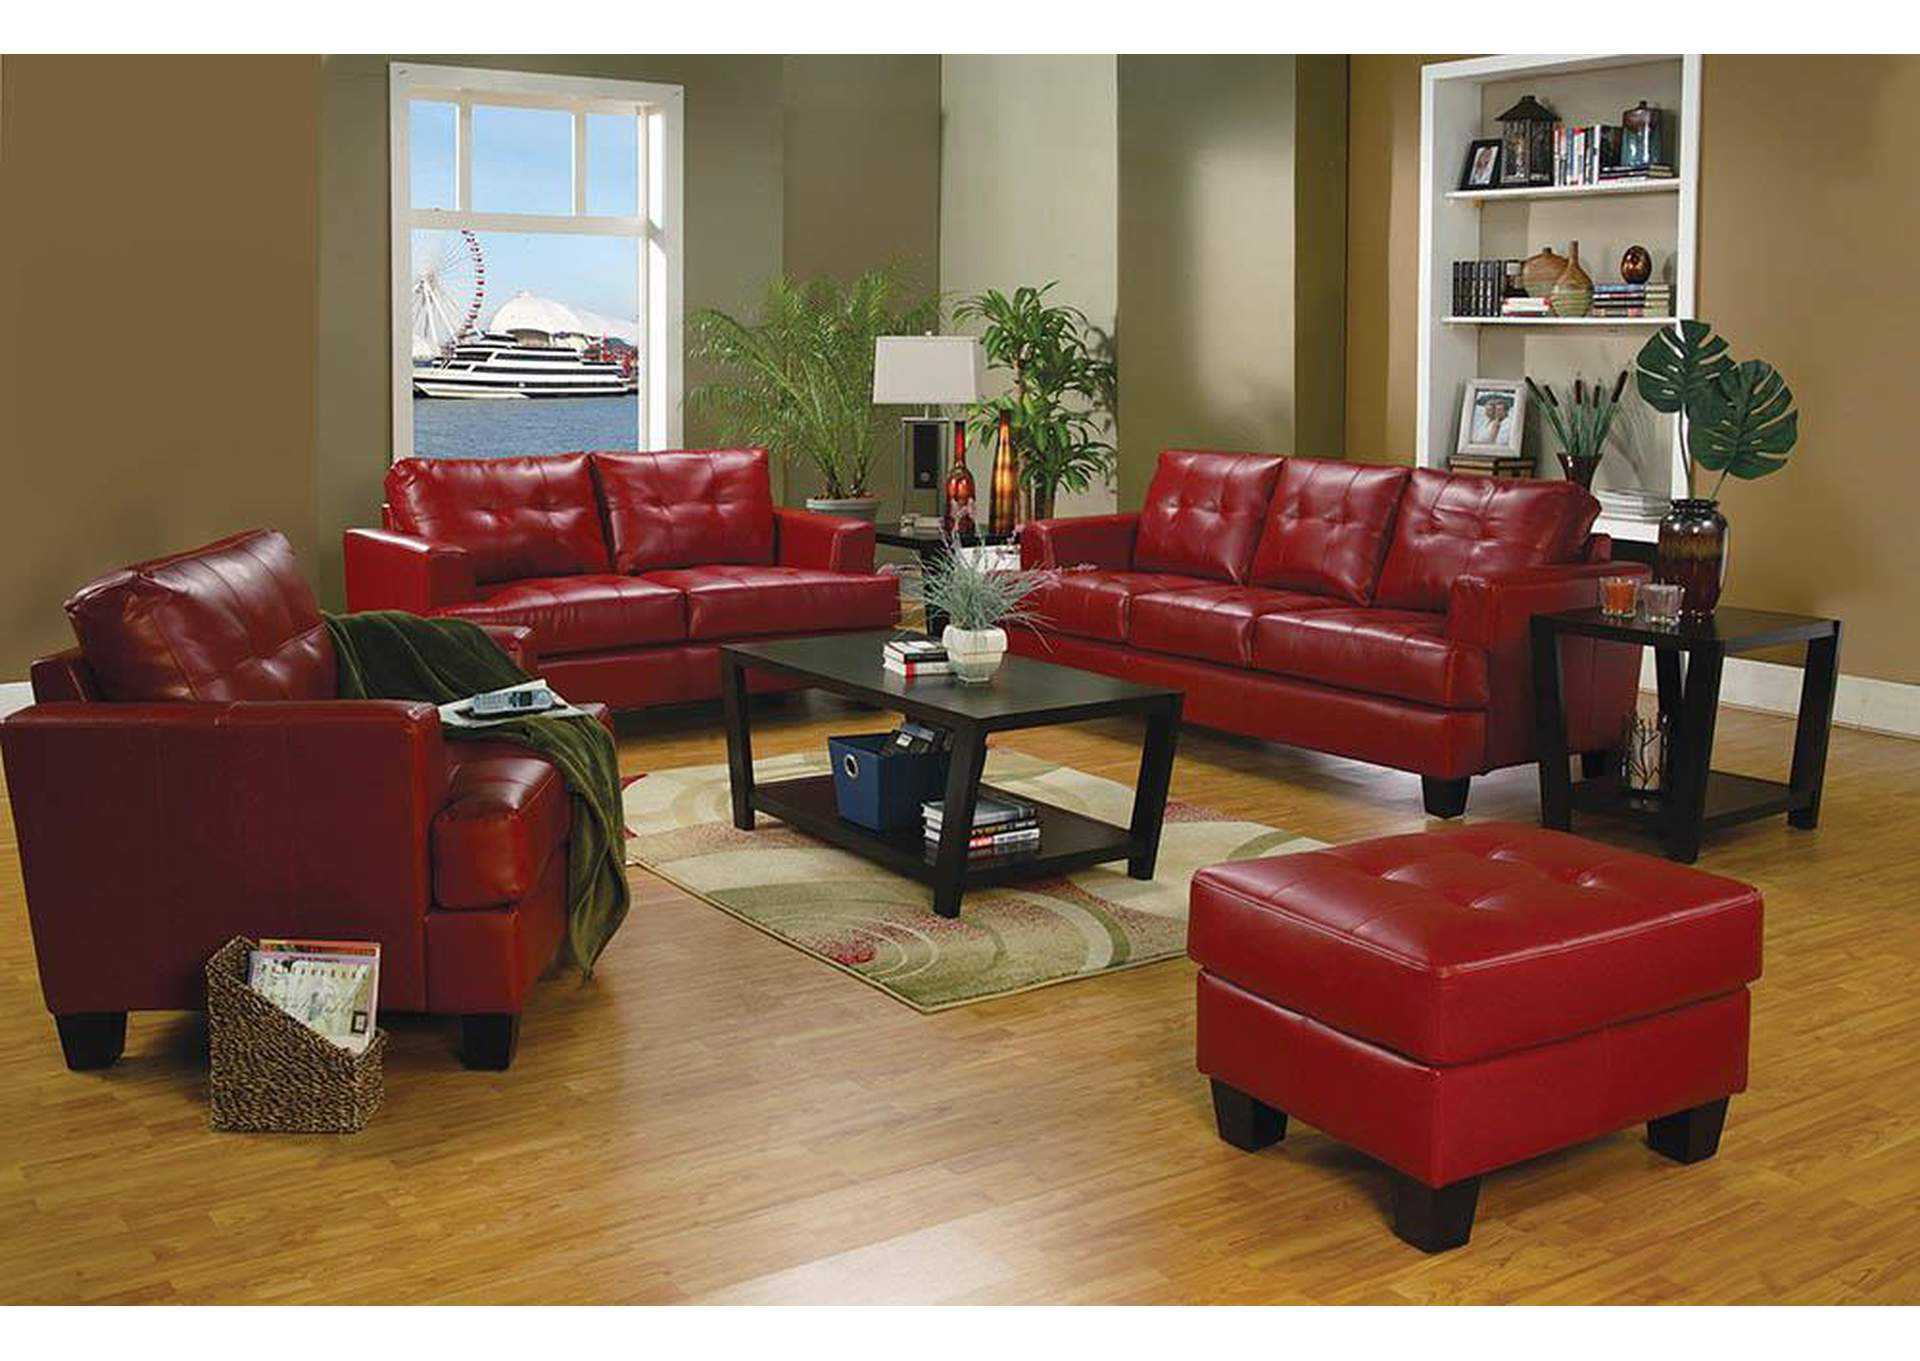 Samuel Red Bonded Leather Sofa,Coaster Furniture